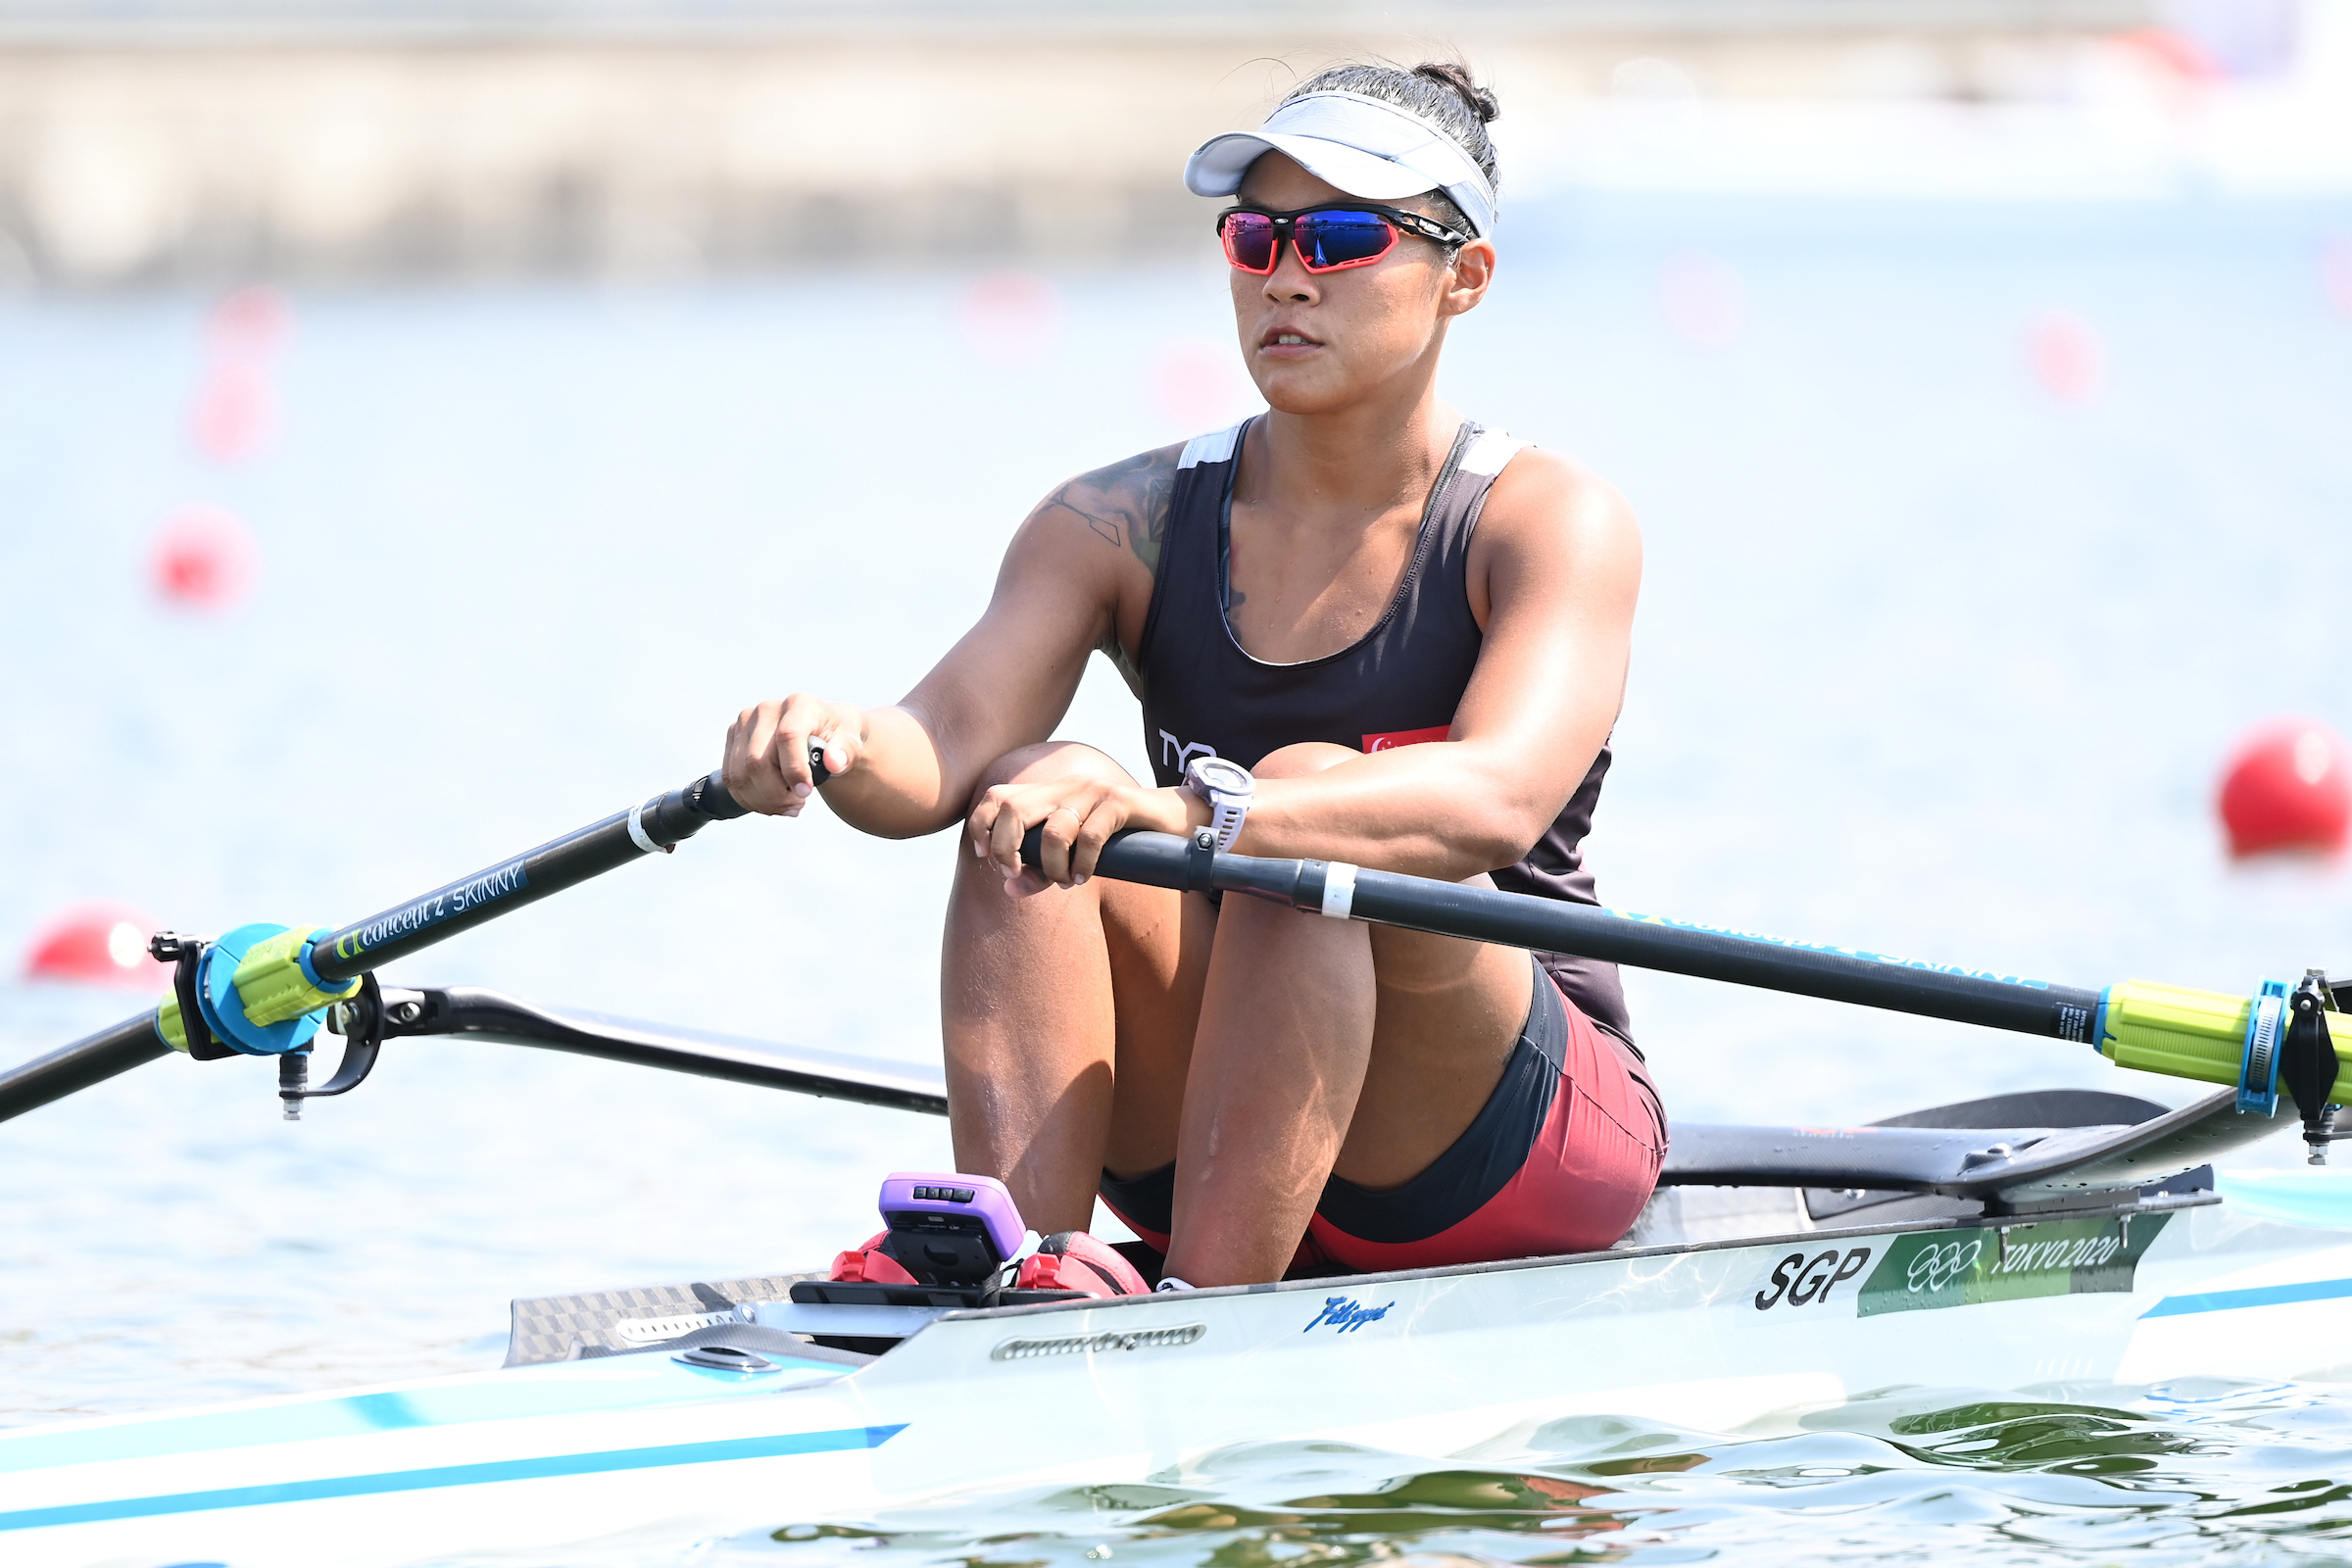 Tokyo 2020 : Rower Joan Poh kicks off TeamSG's campaign with a brave performance on her Olympic debut!